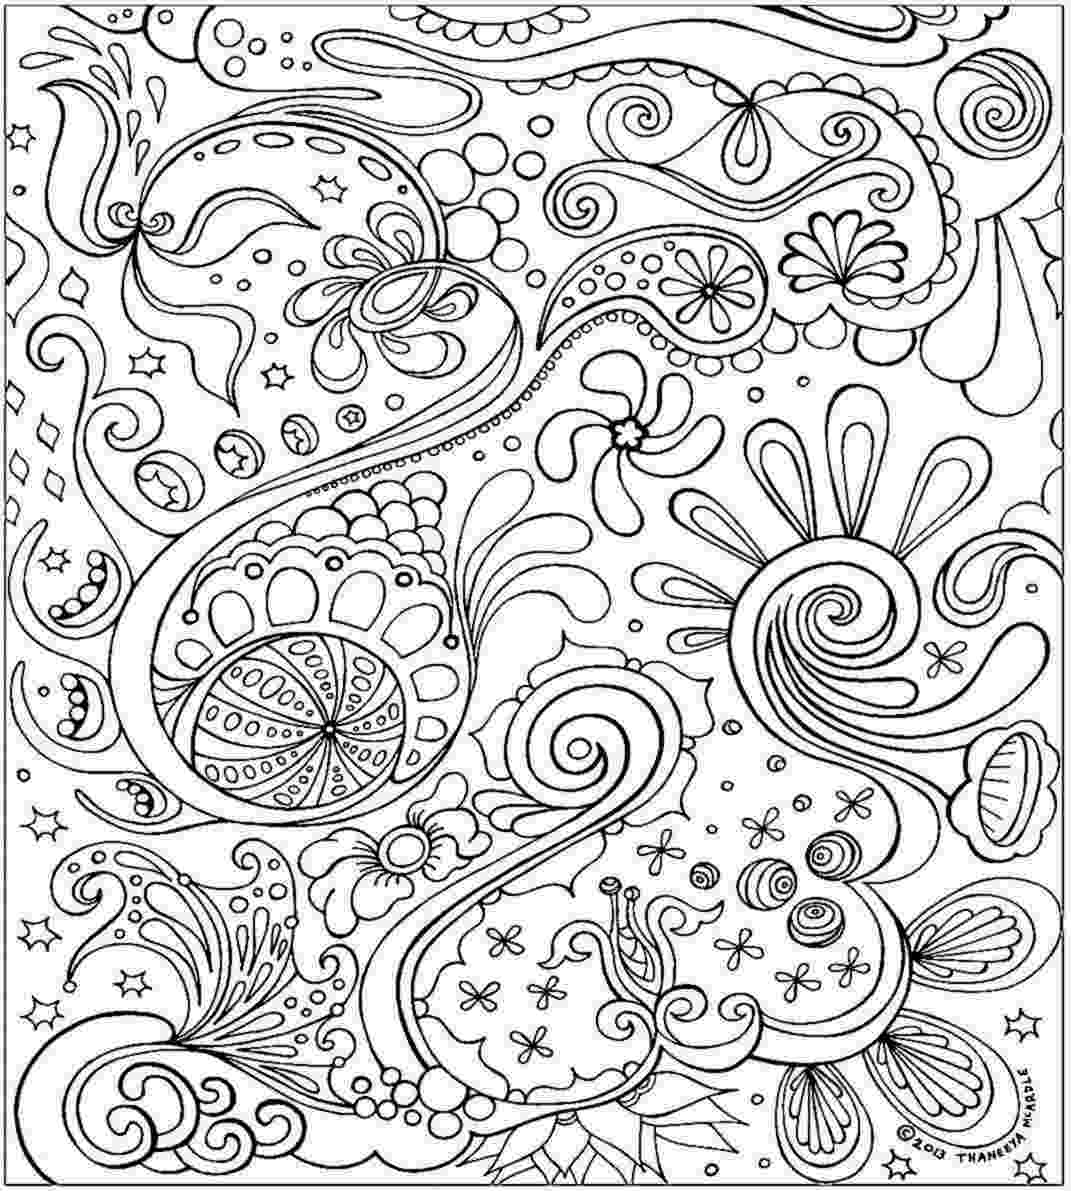 printable coloring pages for adults stress beauty and nature edward ramos 7 anti stress adult pages printable coloring stress for adults